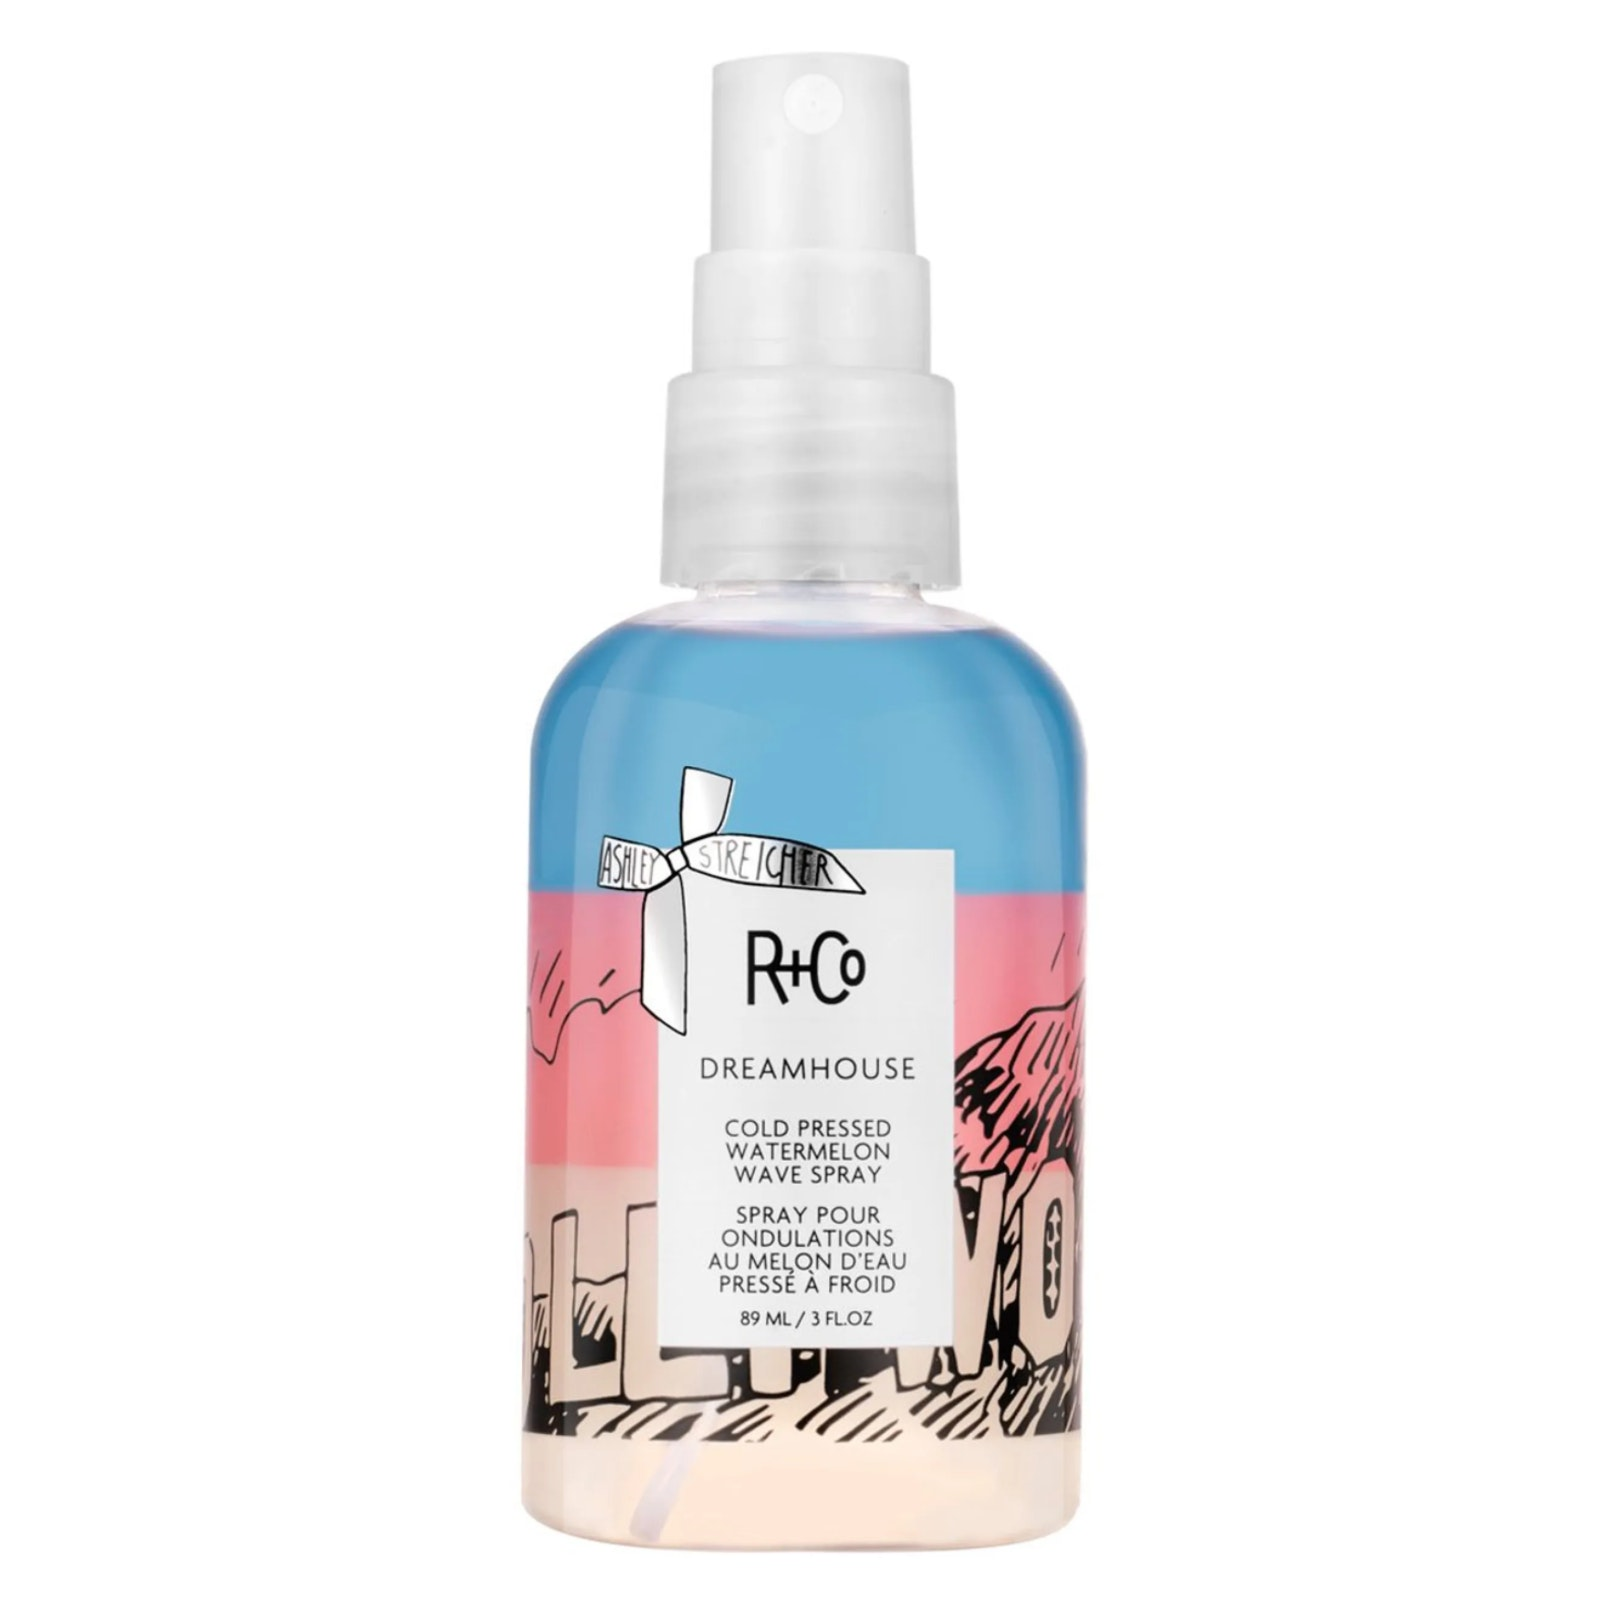 R+Co® DREAMHOUSE™ Cold-Pressed Watermelon Wave Spray